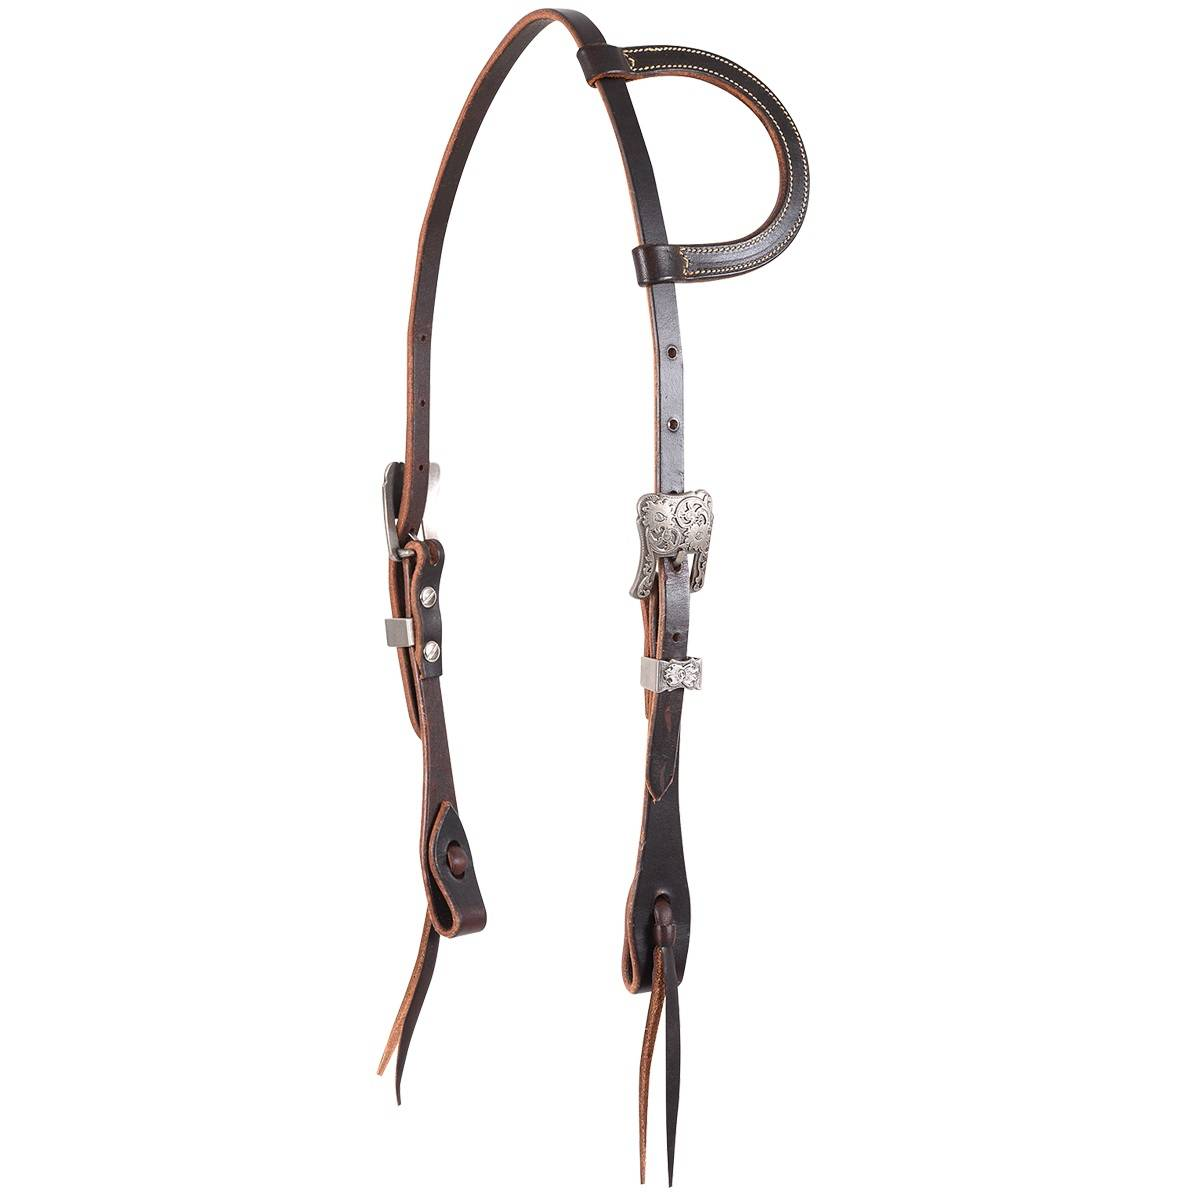 Martin Slip Ear Antique Silver Buckle Headstall Chocolate